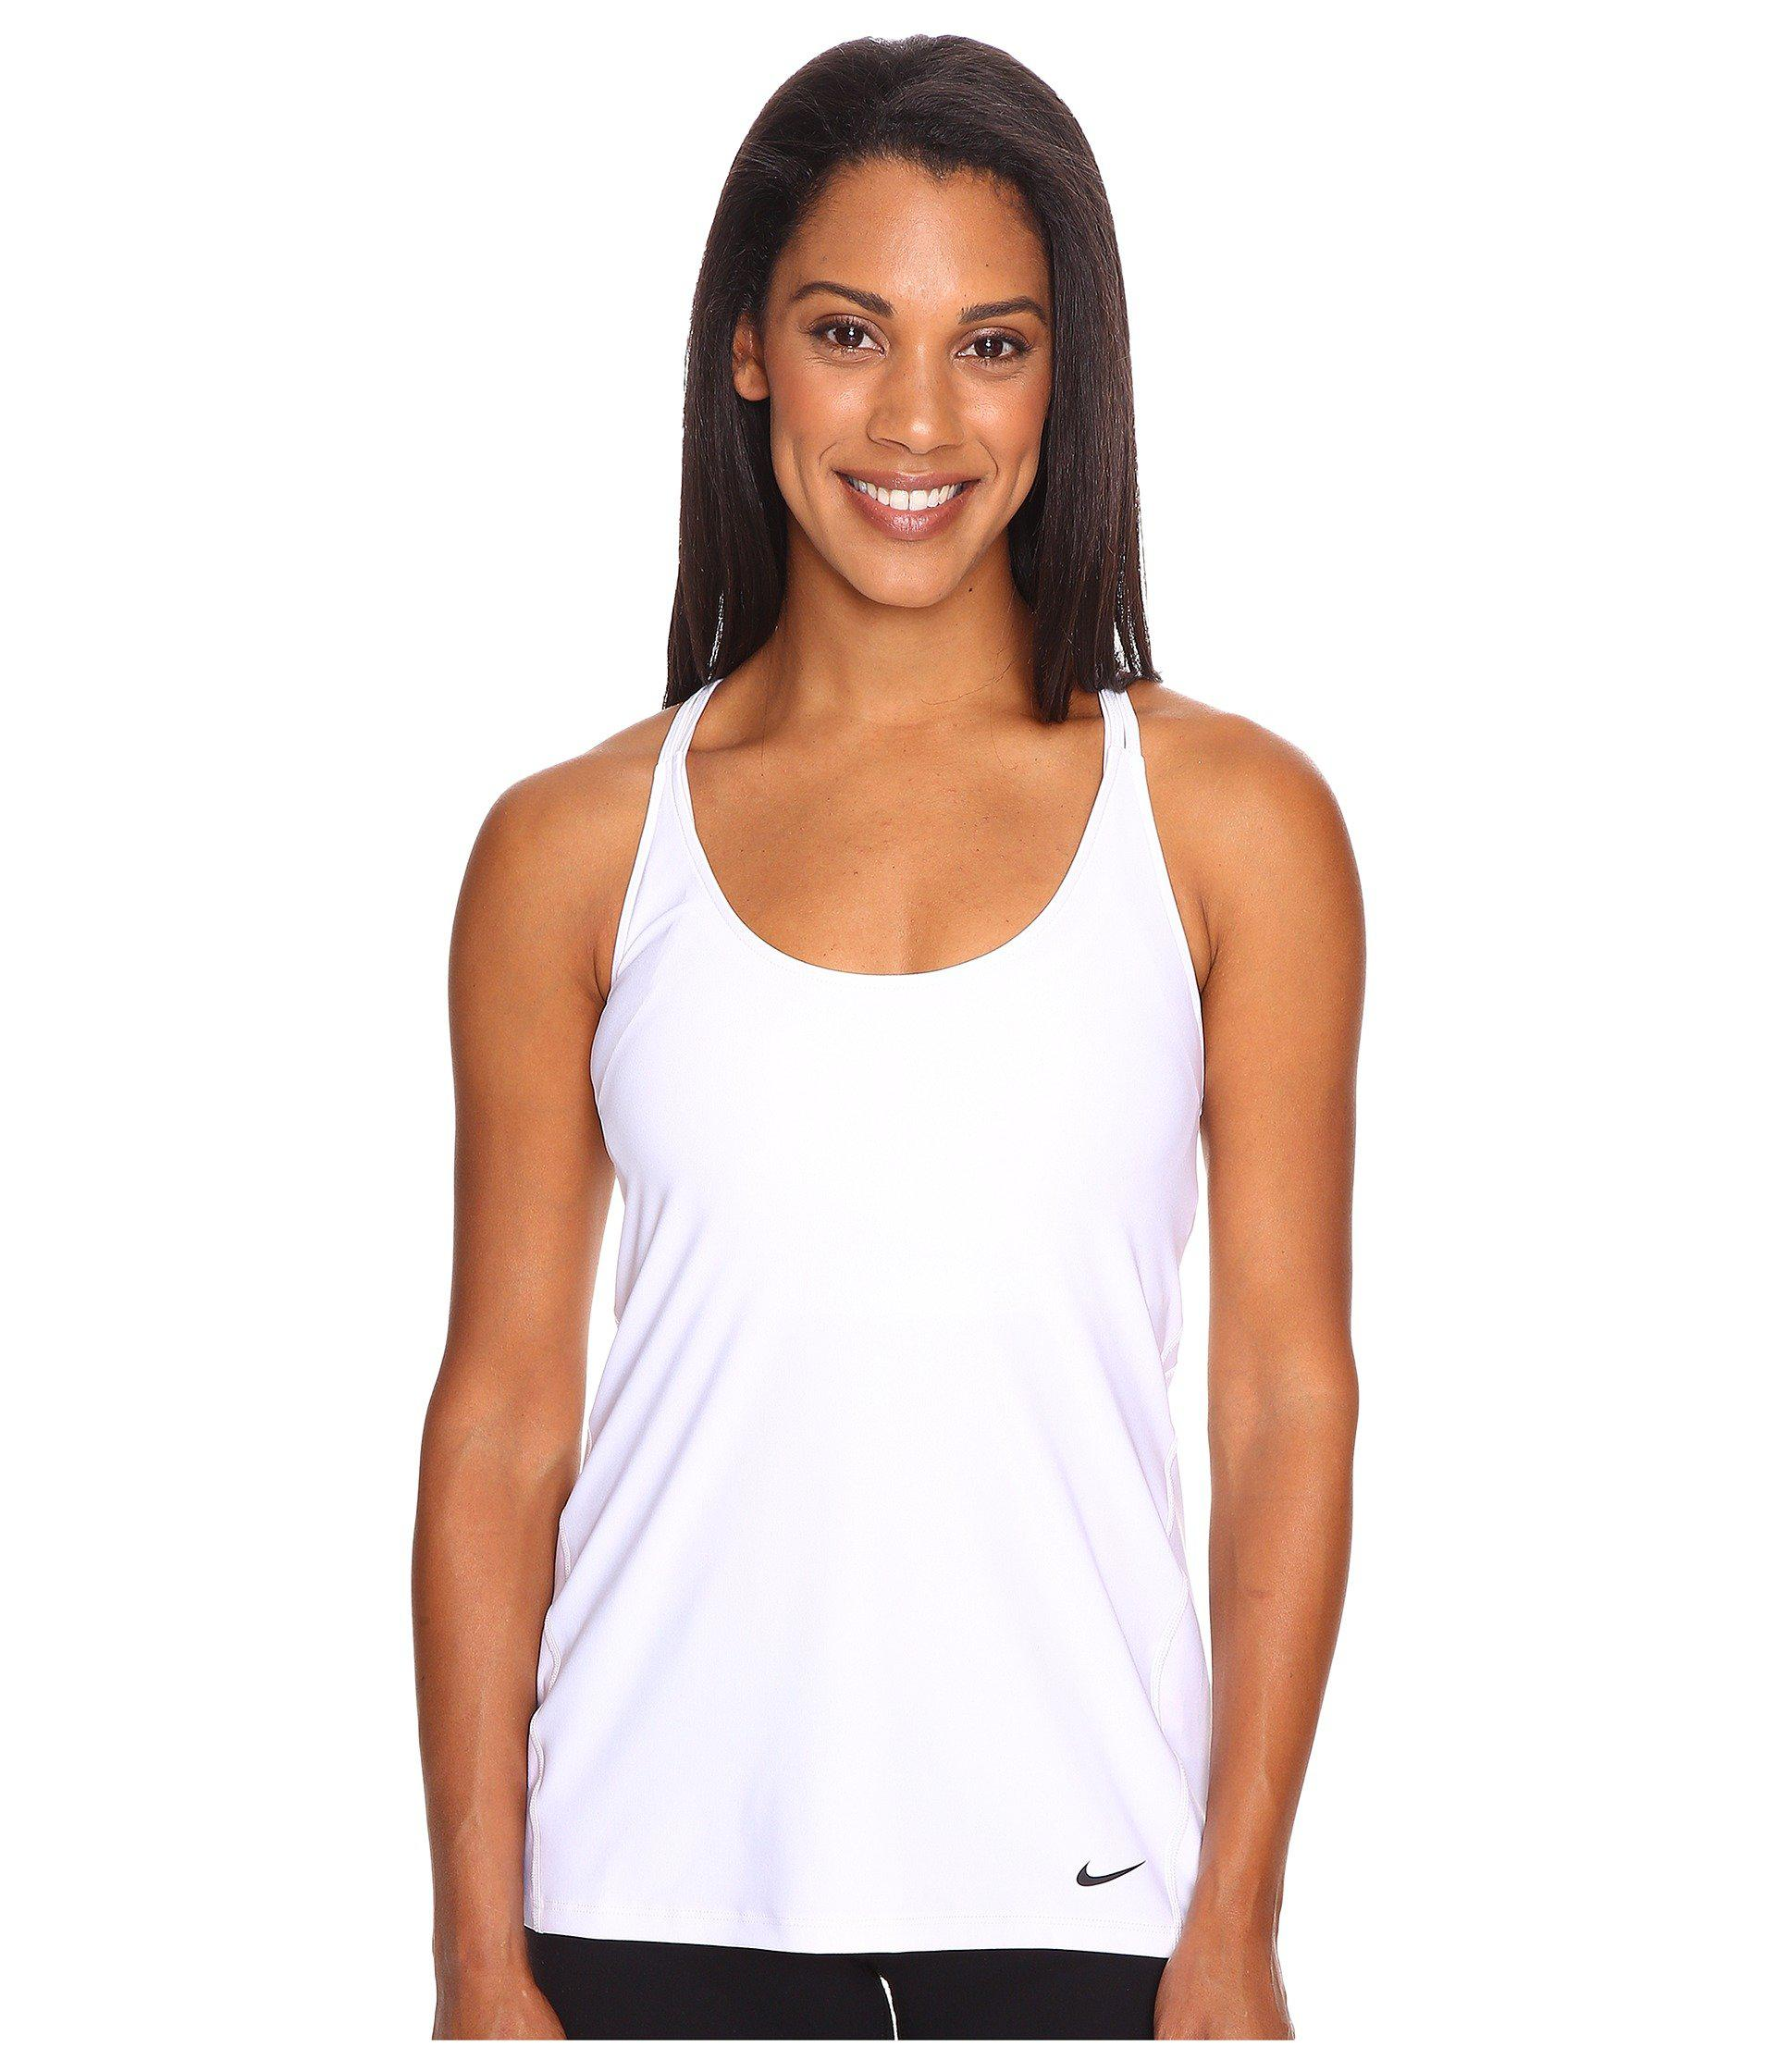 950e22bba2ff66 Lyst - Nike Strappy Training Tank in White - Save 20%